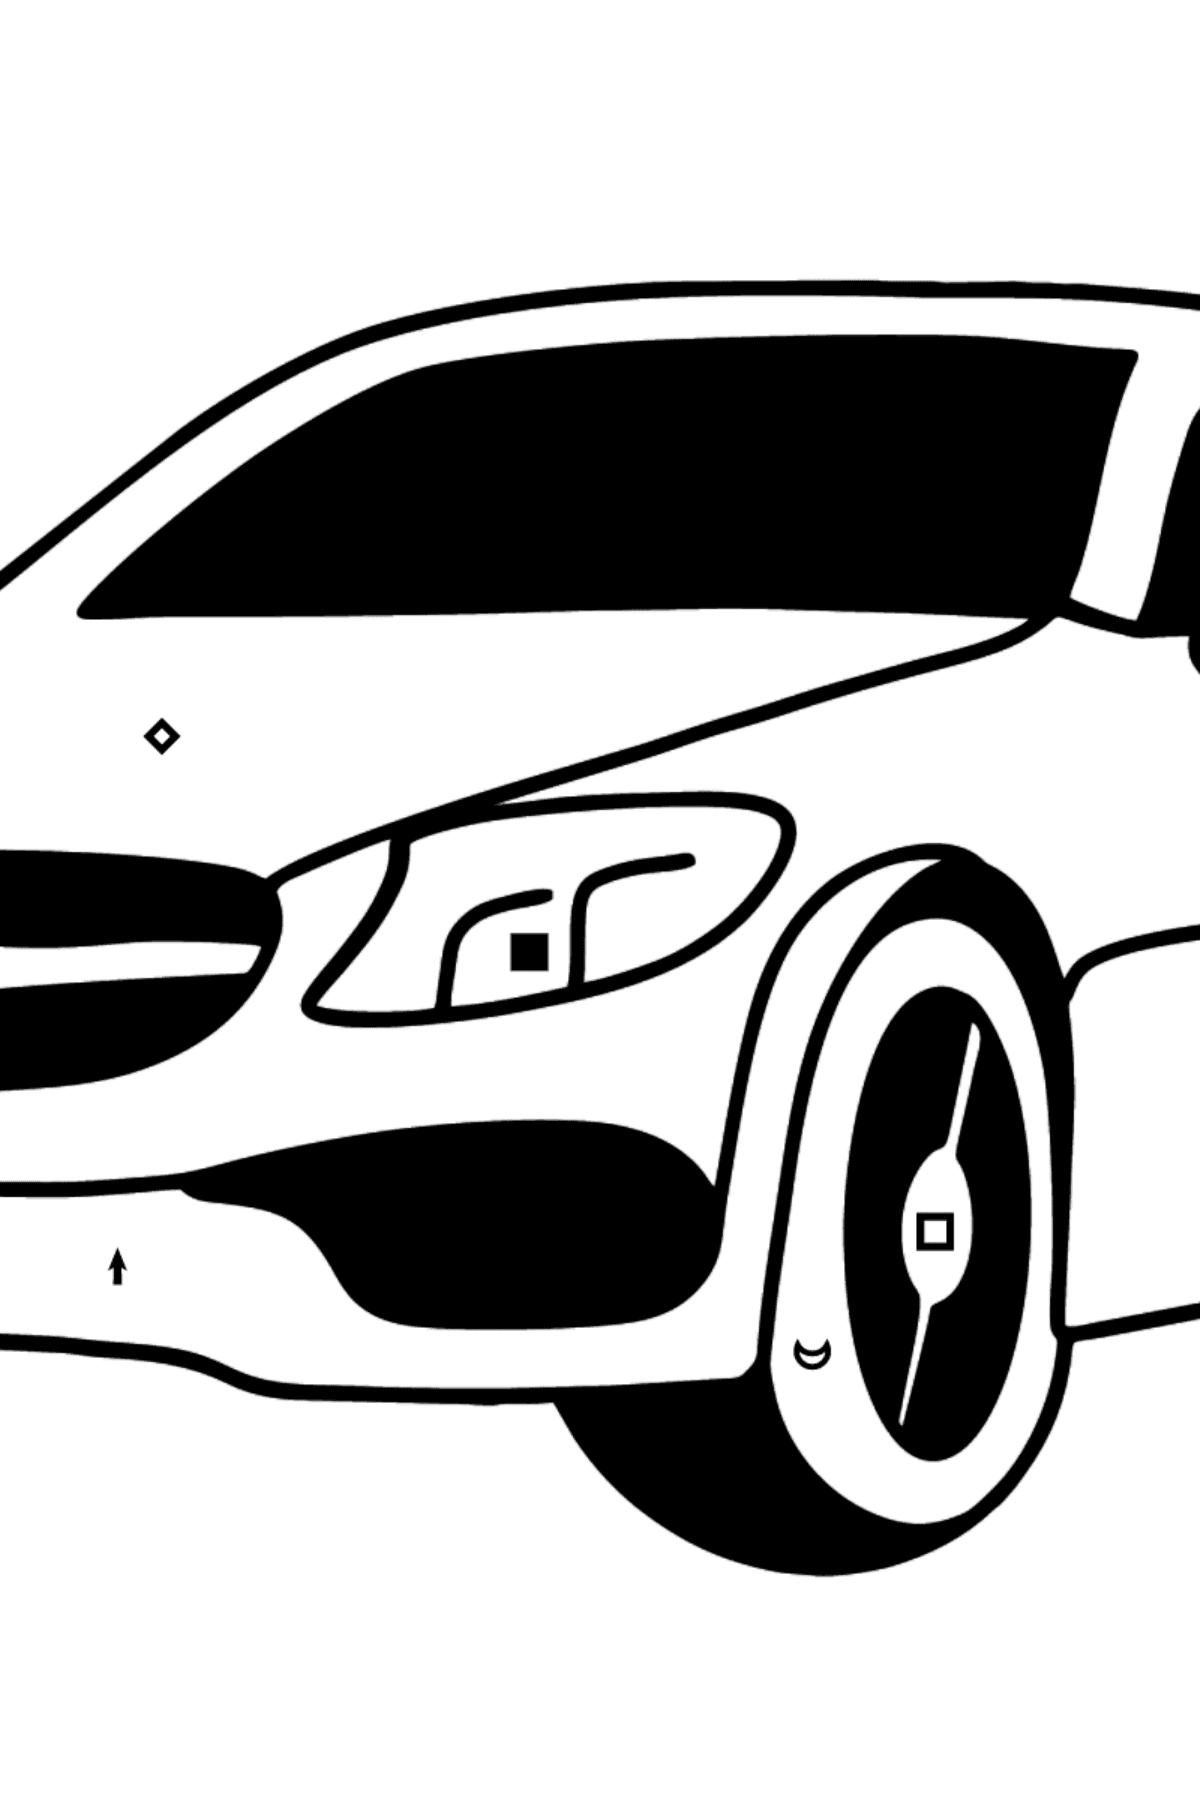 Mercedes C63 AMG car coloring page - Coloring by Symbols for Kids